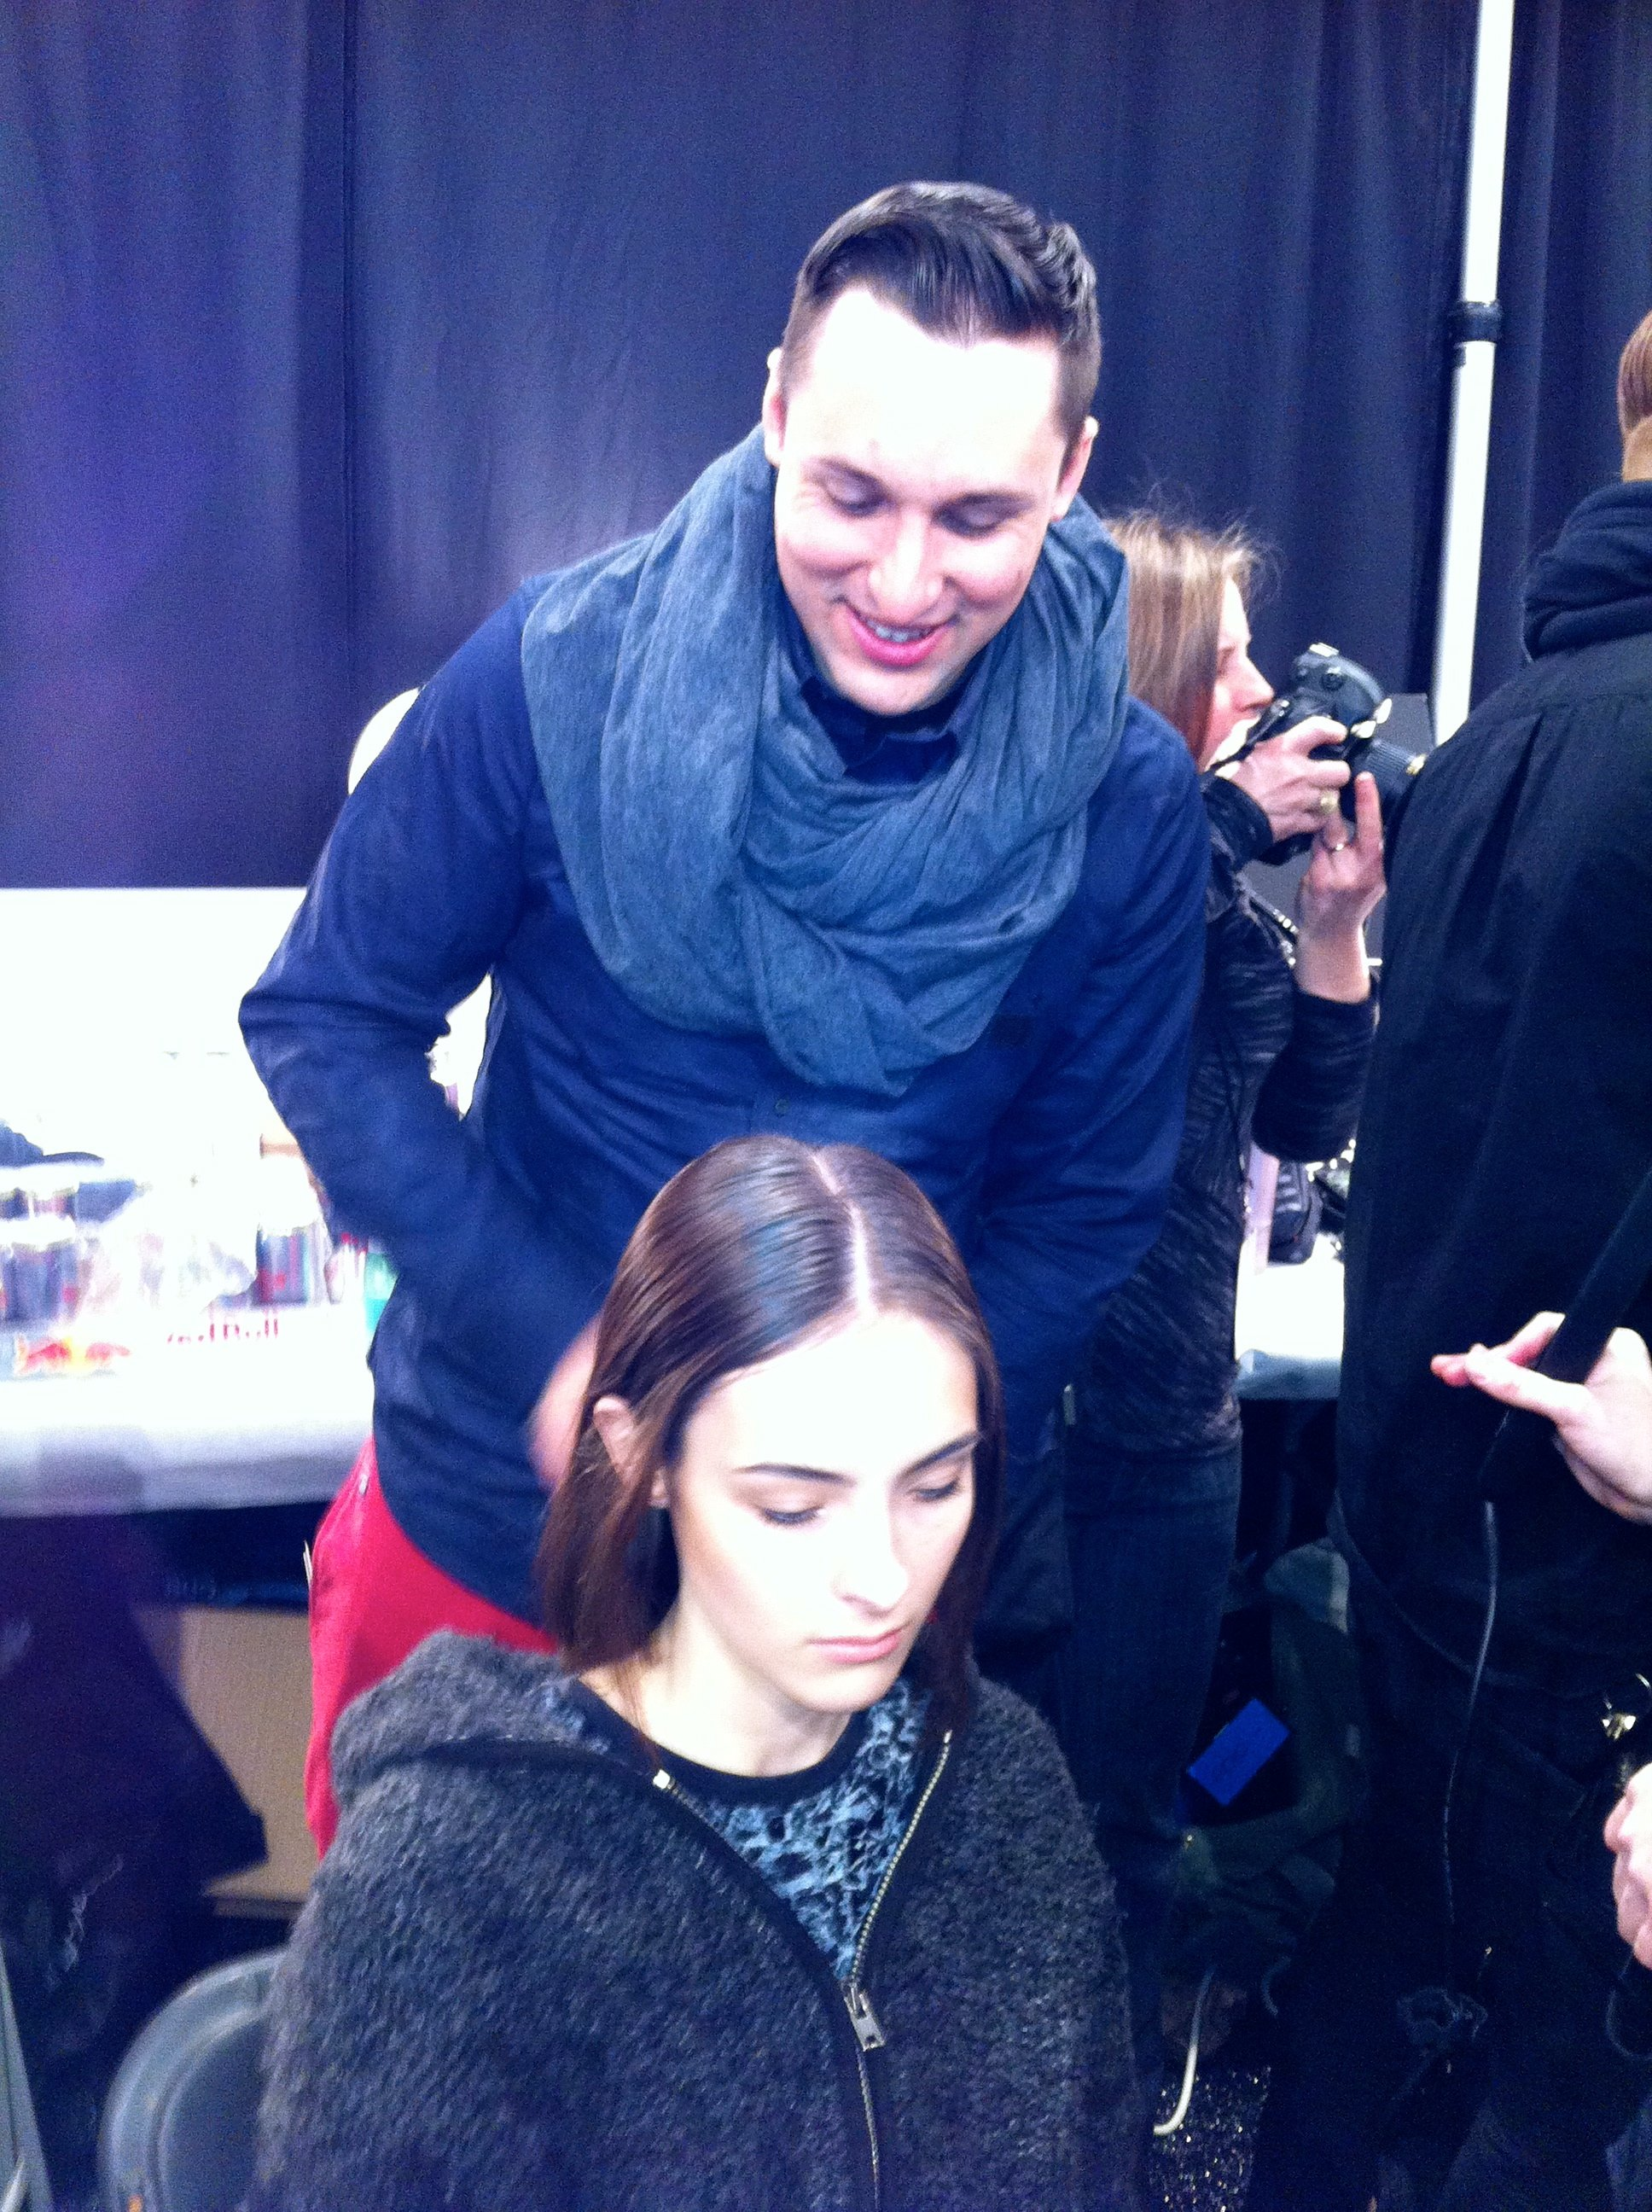 Lead hairstylist Joseph DiMaggio backstage at Timo Weiland